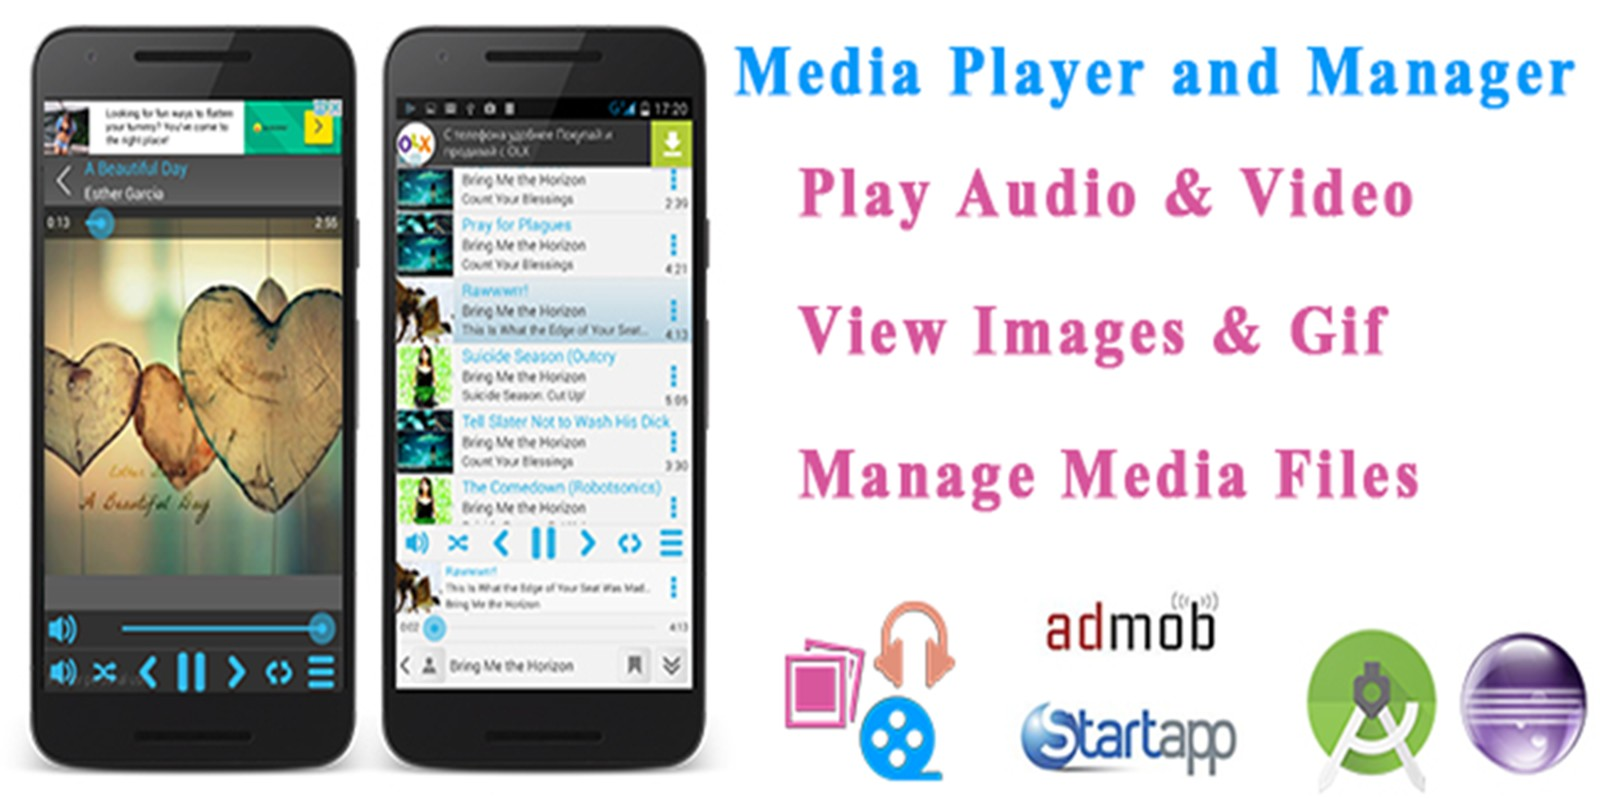 Media Player And Manager - Android Source Code